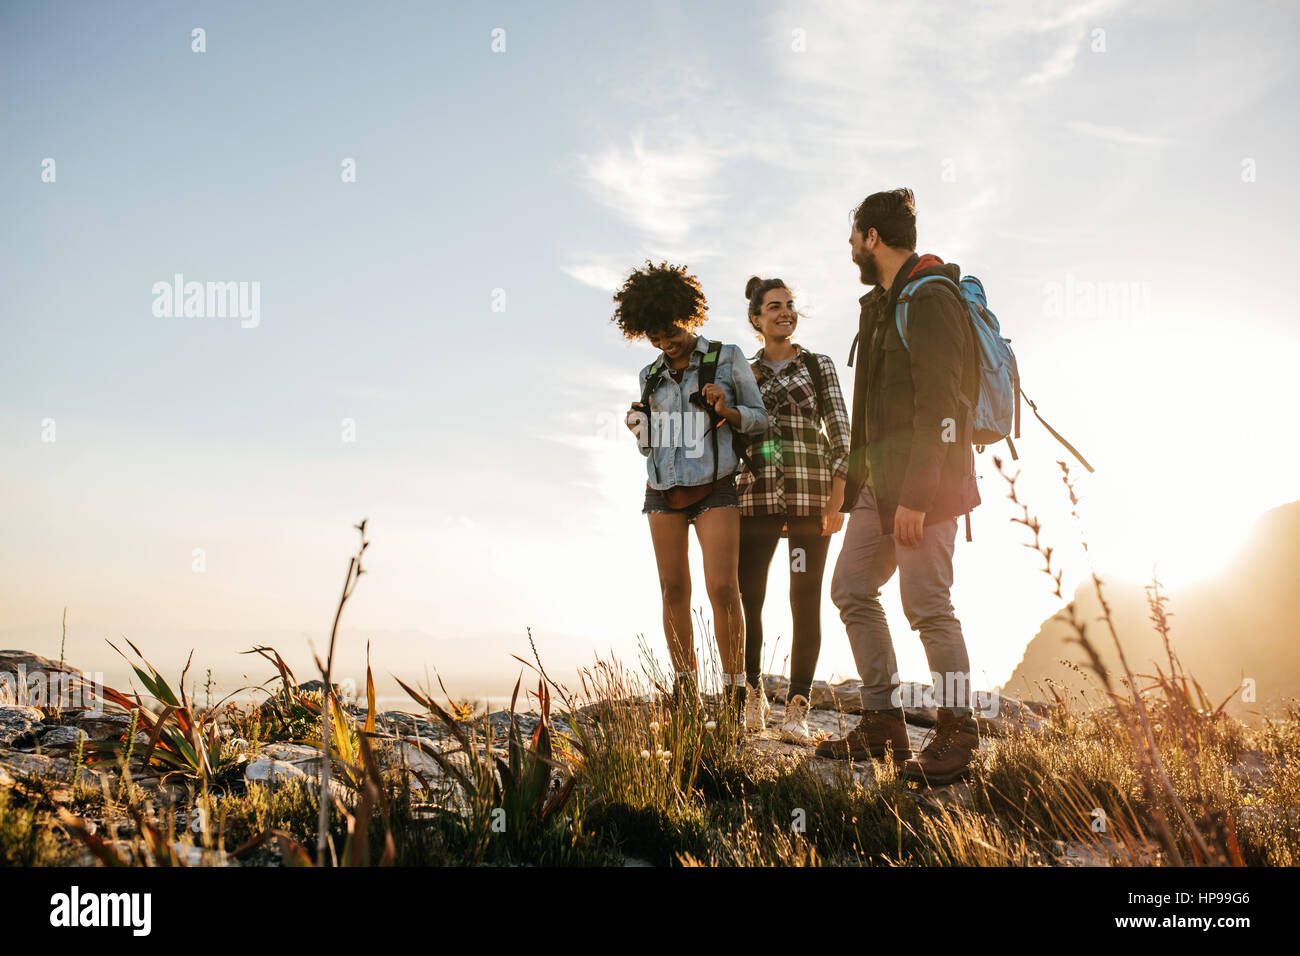 Group of people hiking in nature on a summer day. Three young friends on a country walk. - Stock Image